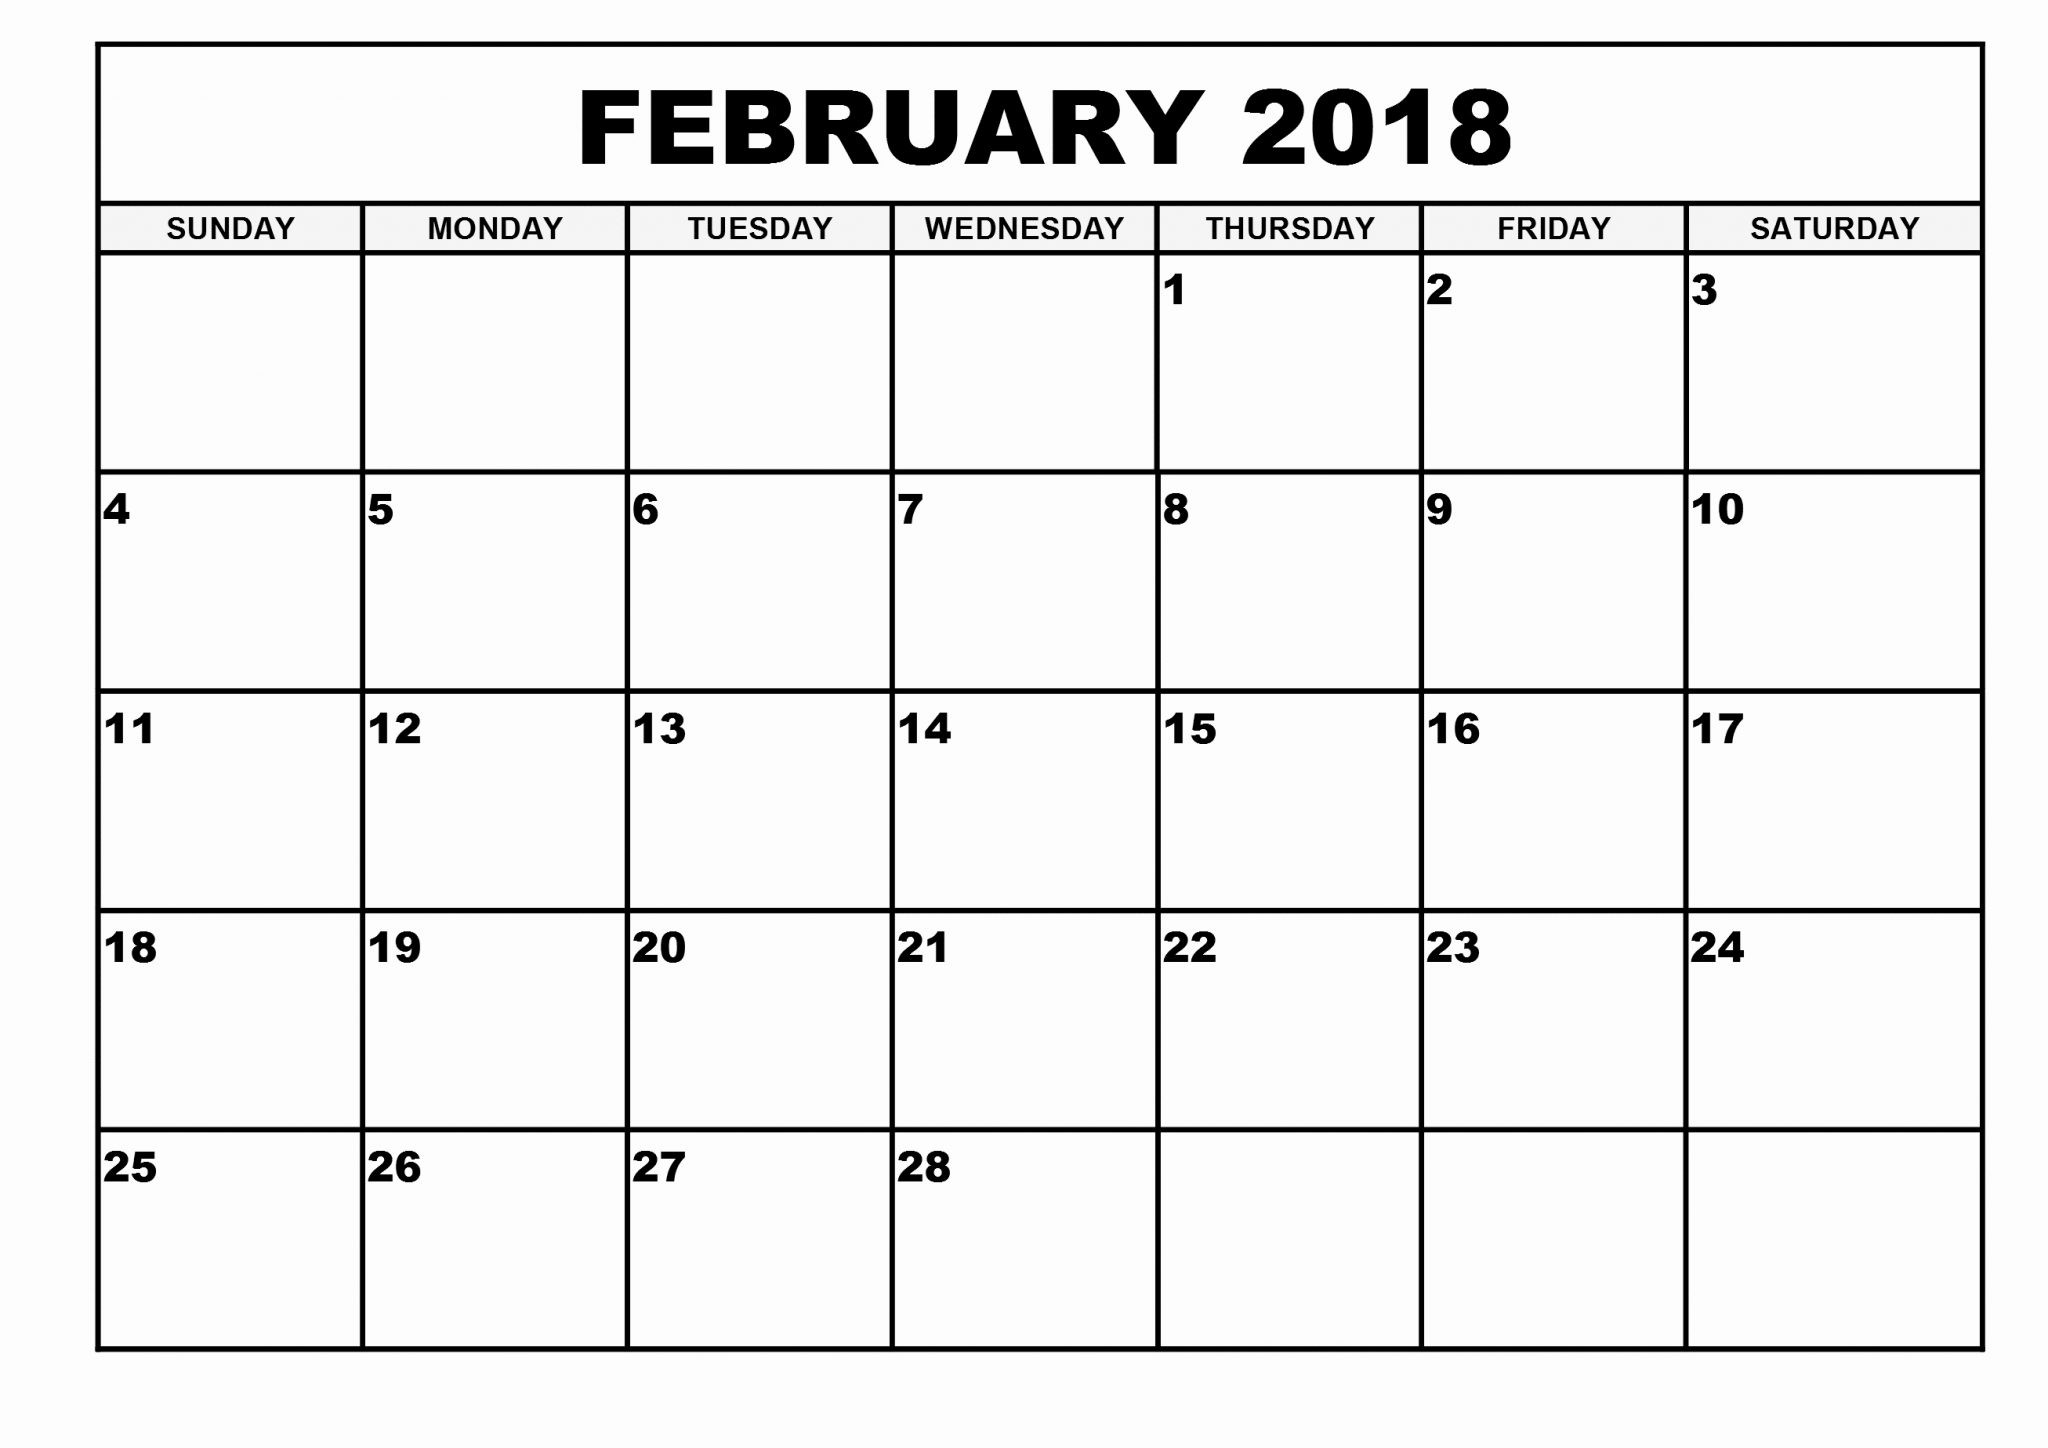 Free] 50+ February 2019 Calendar Printable Pdf With Notes A4 Page  Calendar Blank Printable Monday Start A4